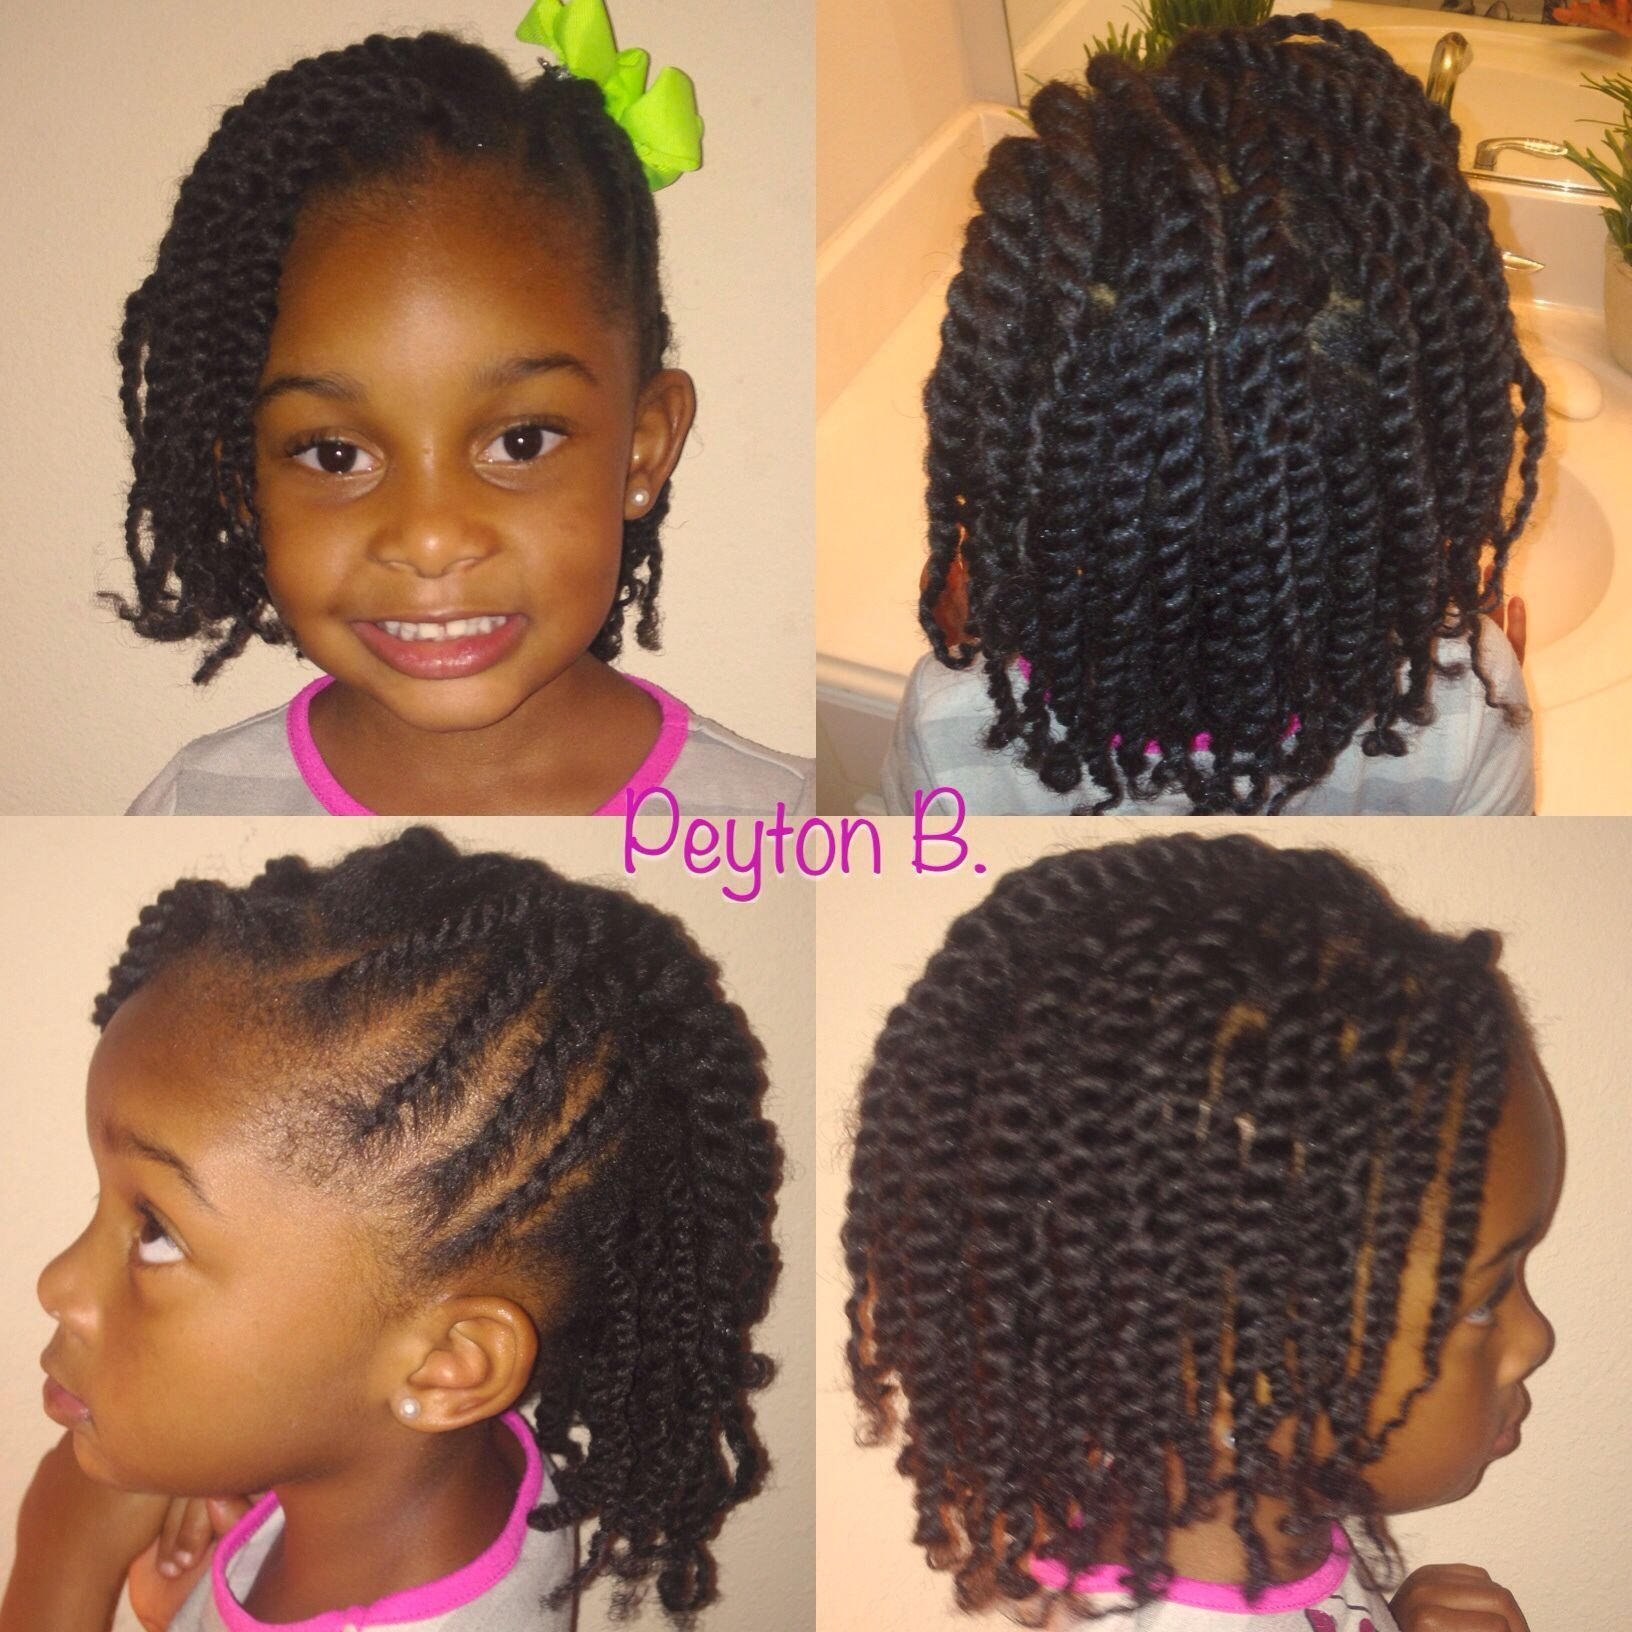 New Two Strand Twist With Side Flat Twist Natural Hairstyle Ideas With Pictures